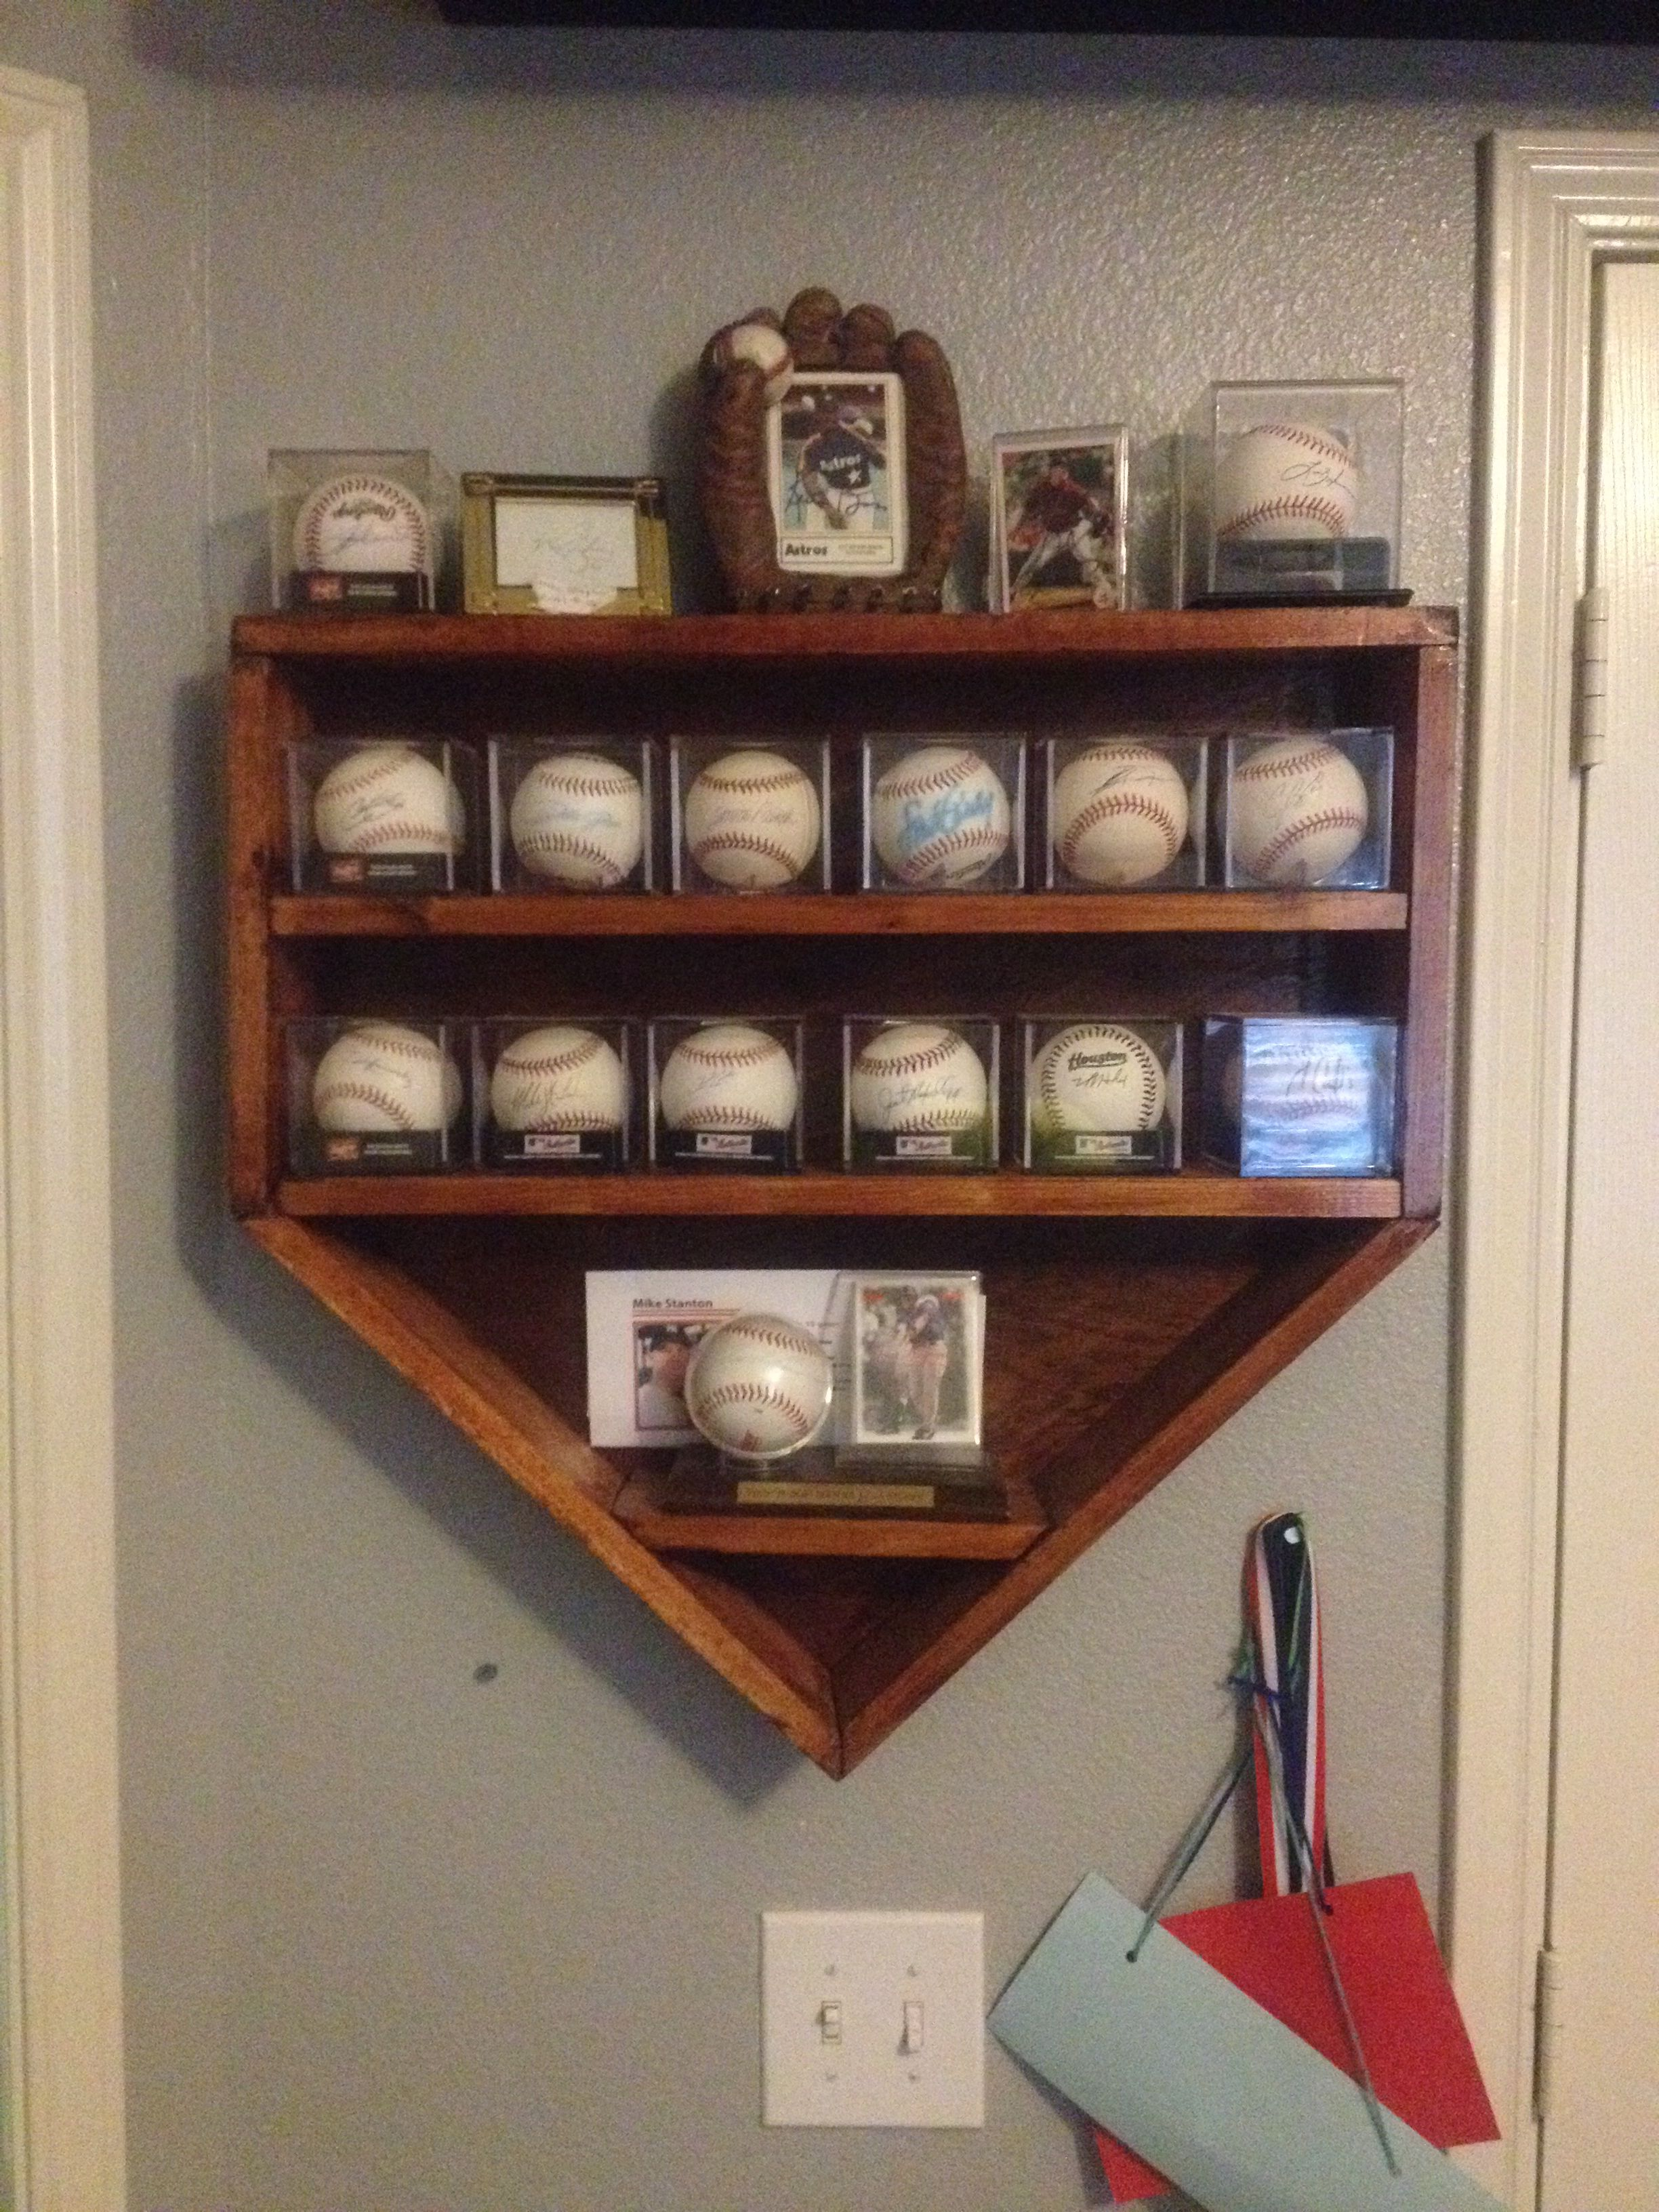 My Sons Autographed Baseball Collection Was Growing And Needed A Place To Store Them This